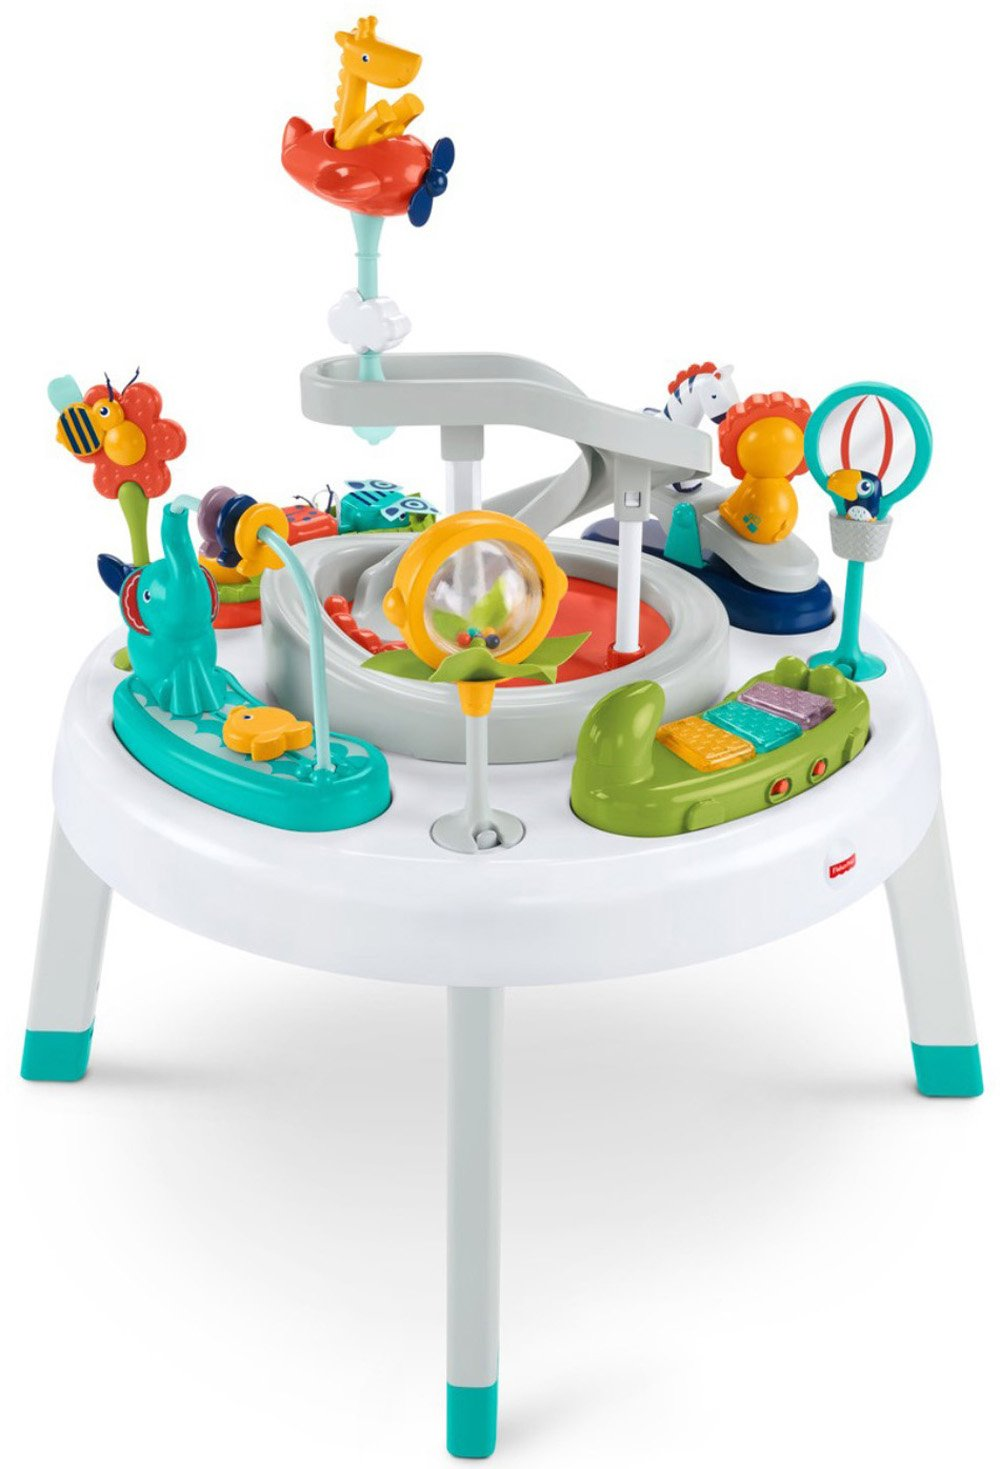 Fisher-Price 2-in-1 Sit-to-Stand Activity Center, Spin 'n Play Safari Spin ' n Play Safari FFJ01